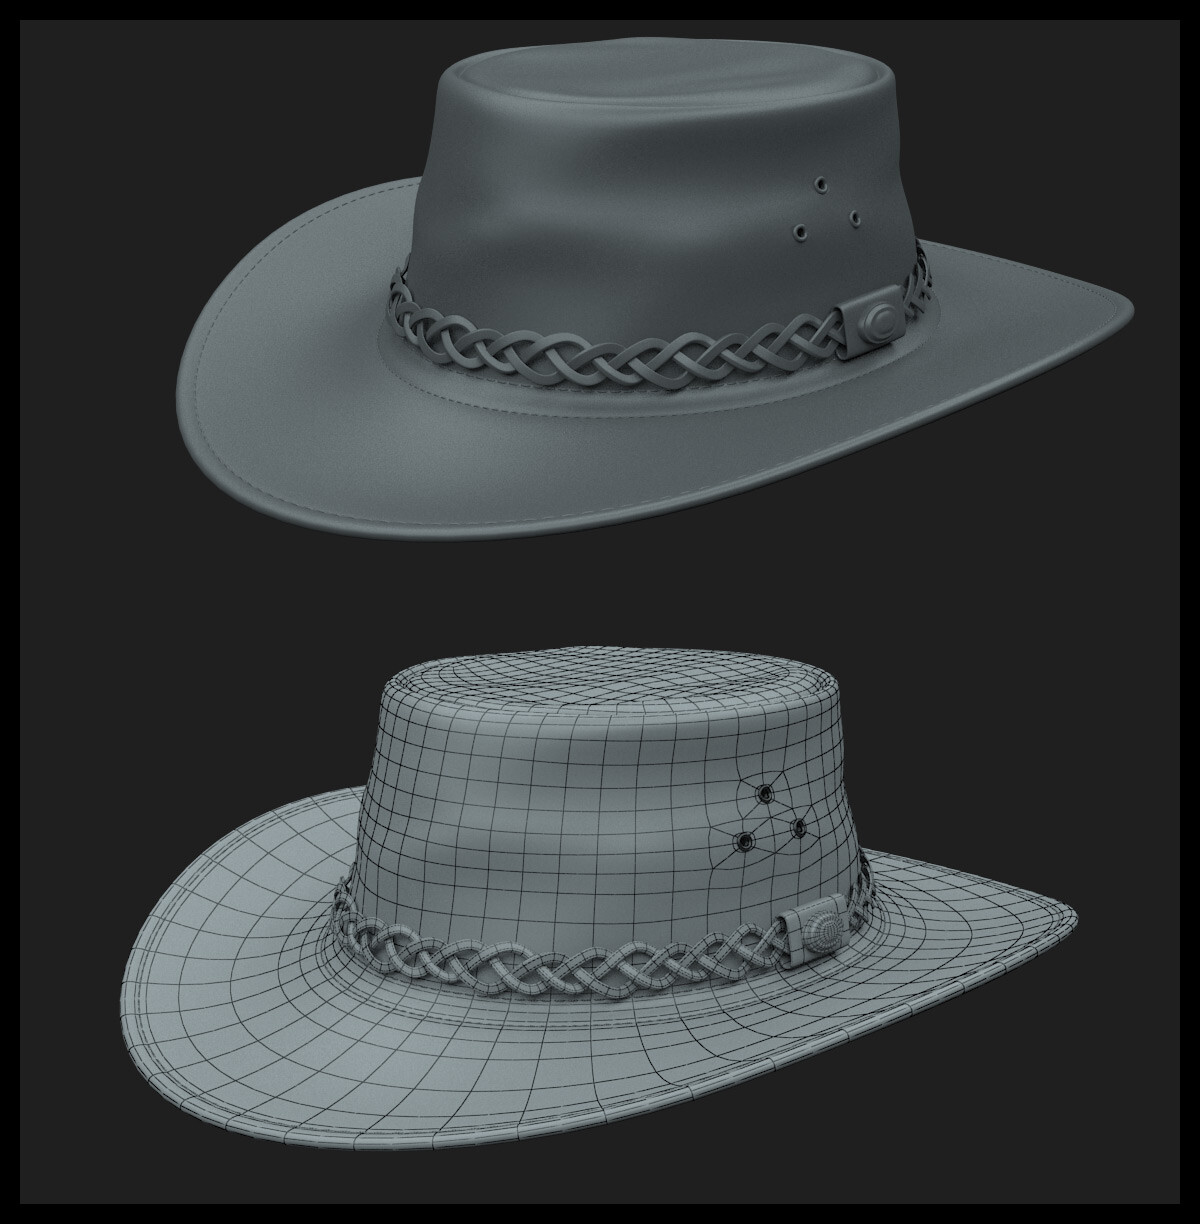 A hat. Buy one now so you can have it on hand when you go bald.